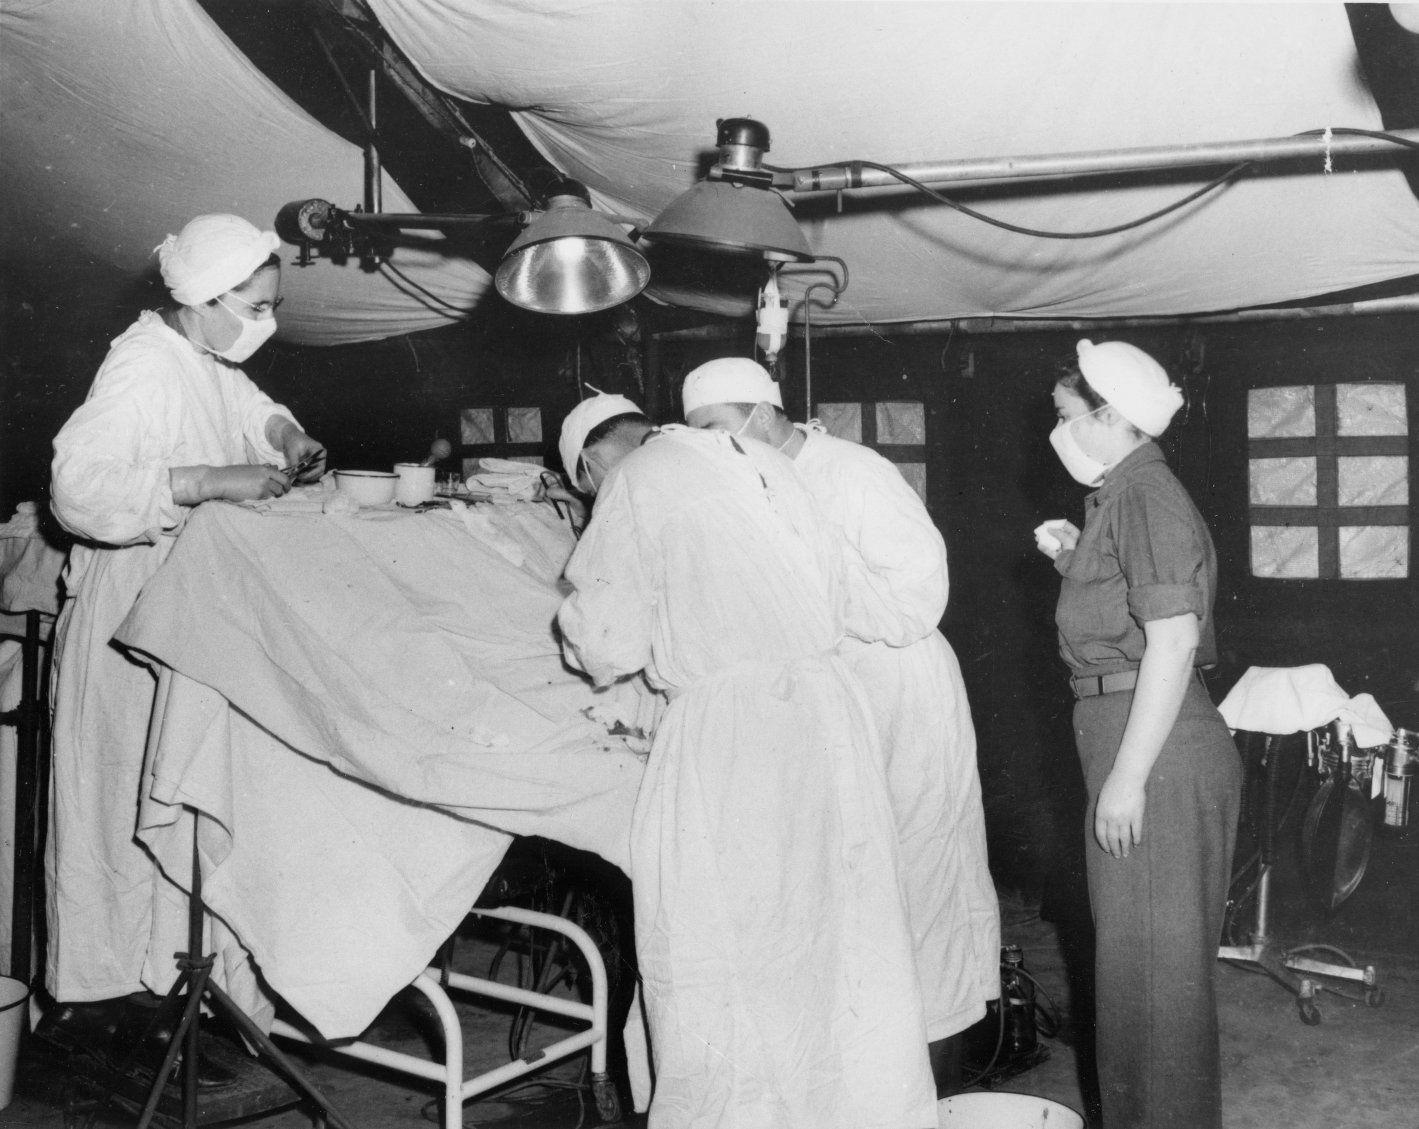 8th Evacuation Hospital Operating Room (OR) from